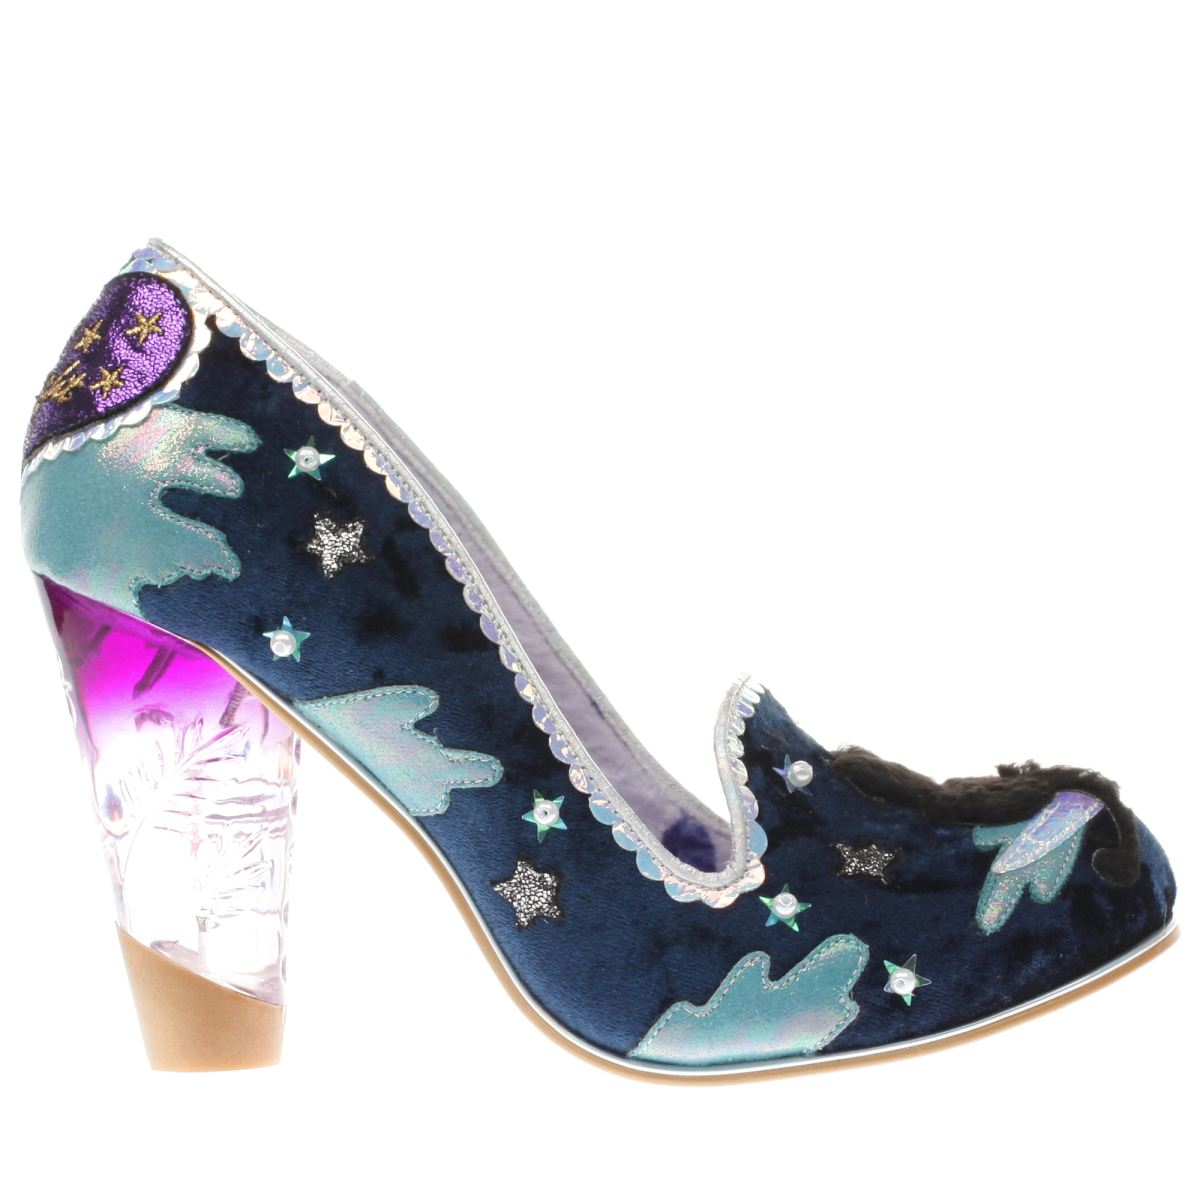 irregular choice navy & pl blue stars at night high heels